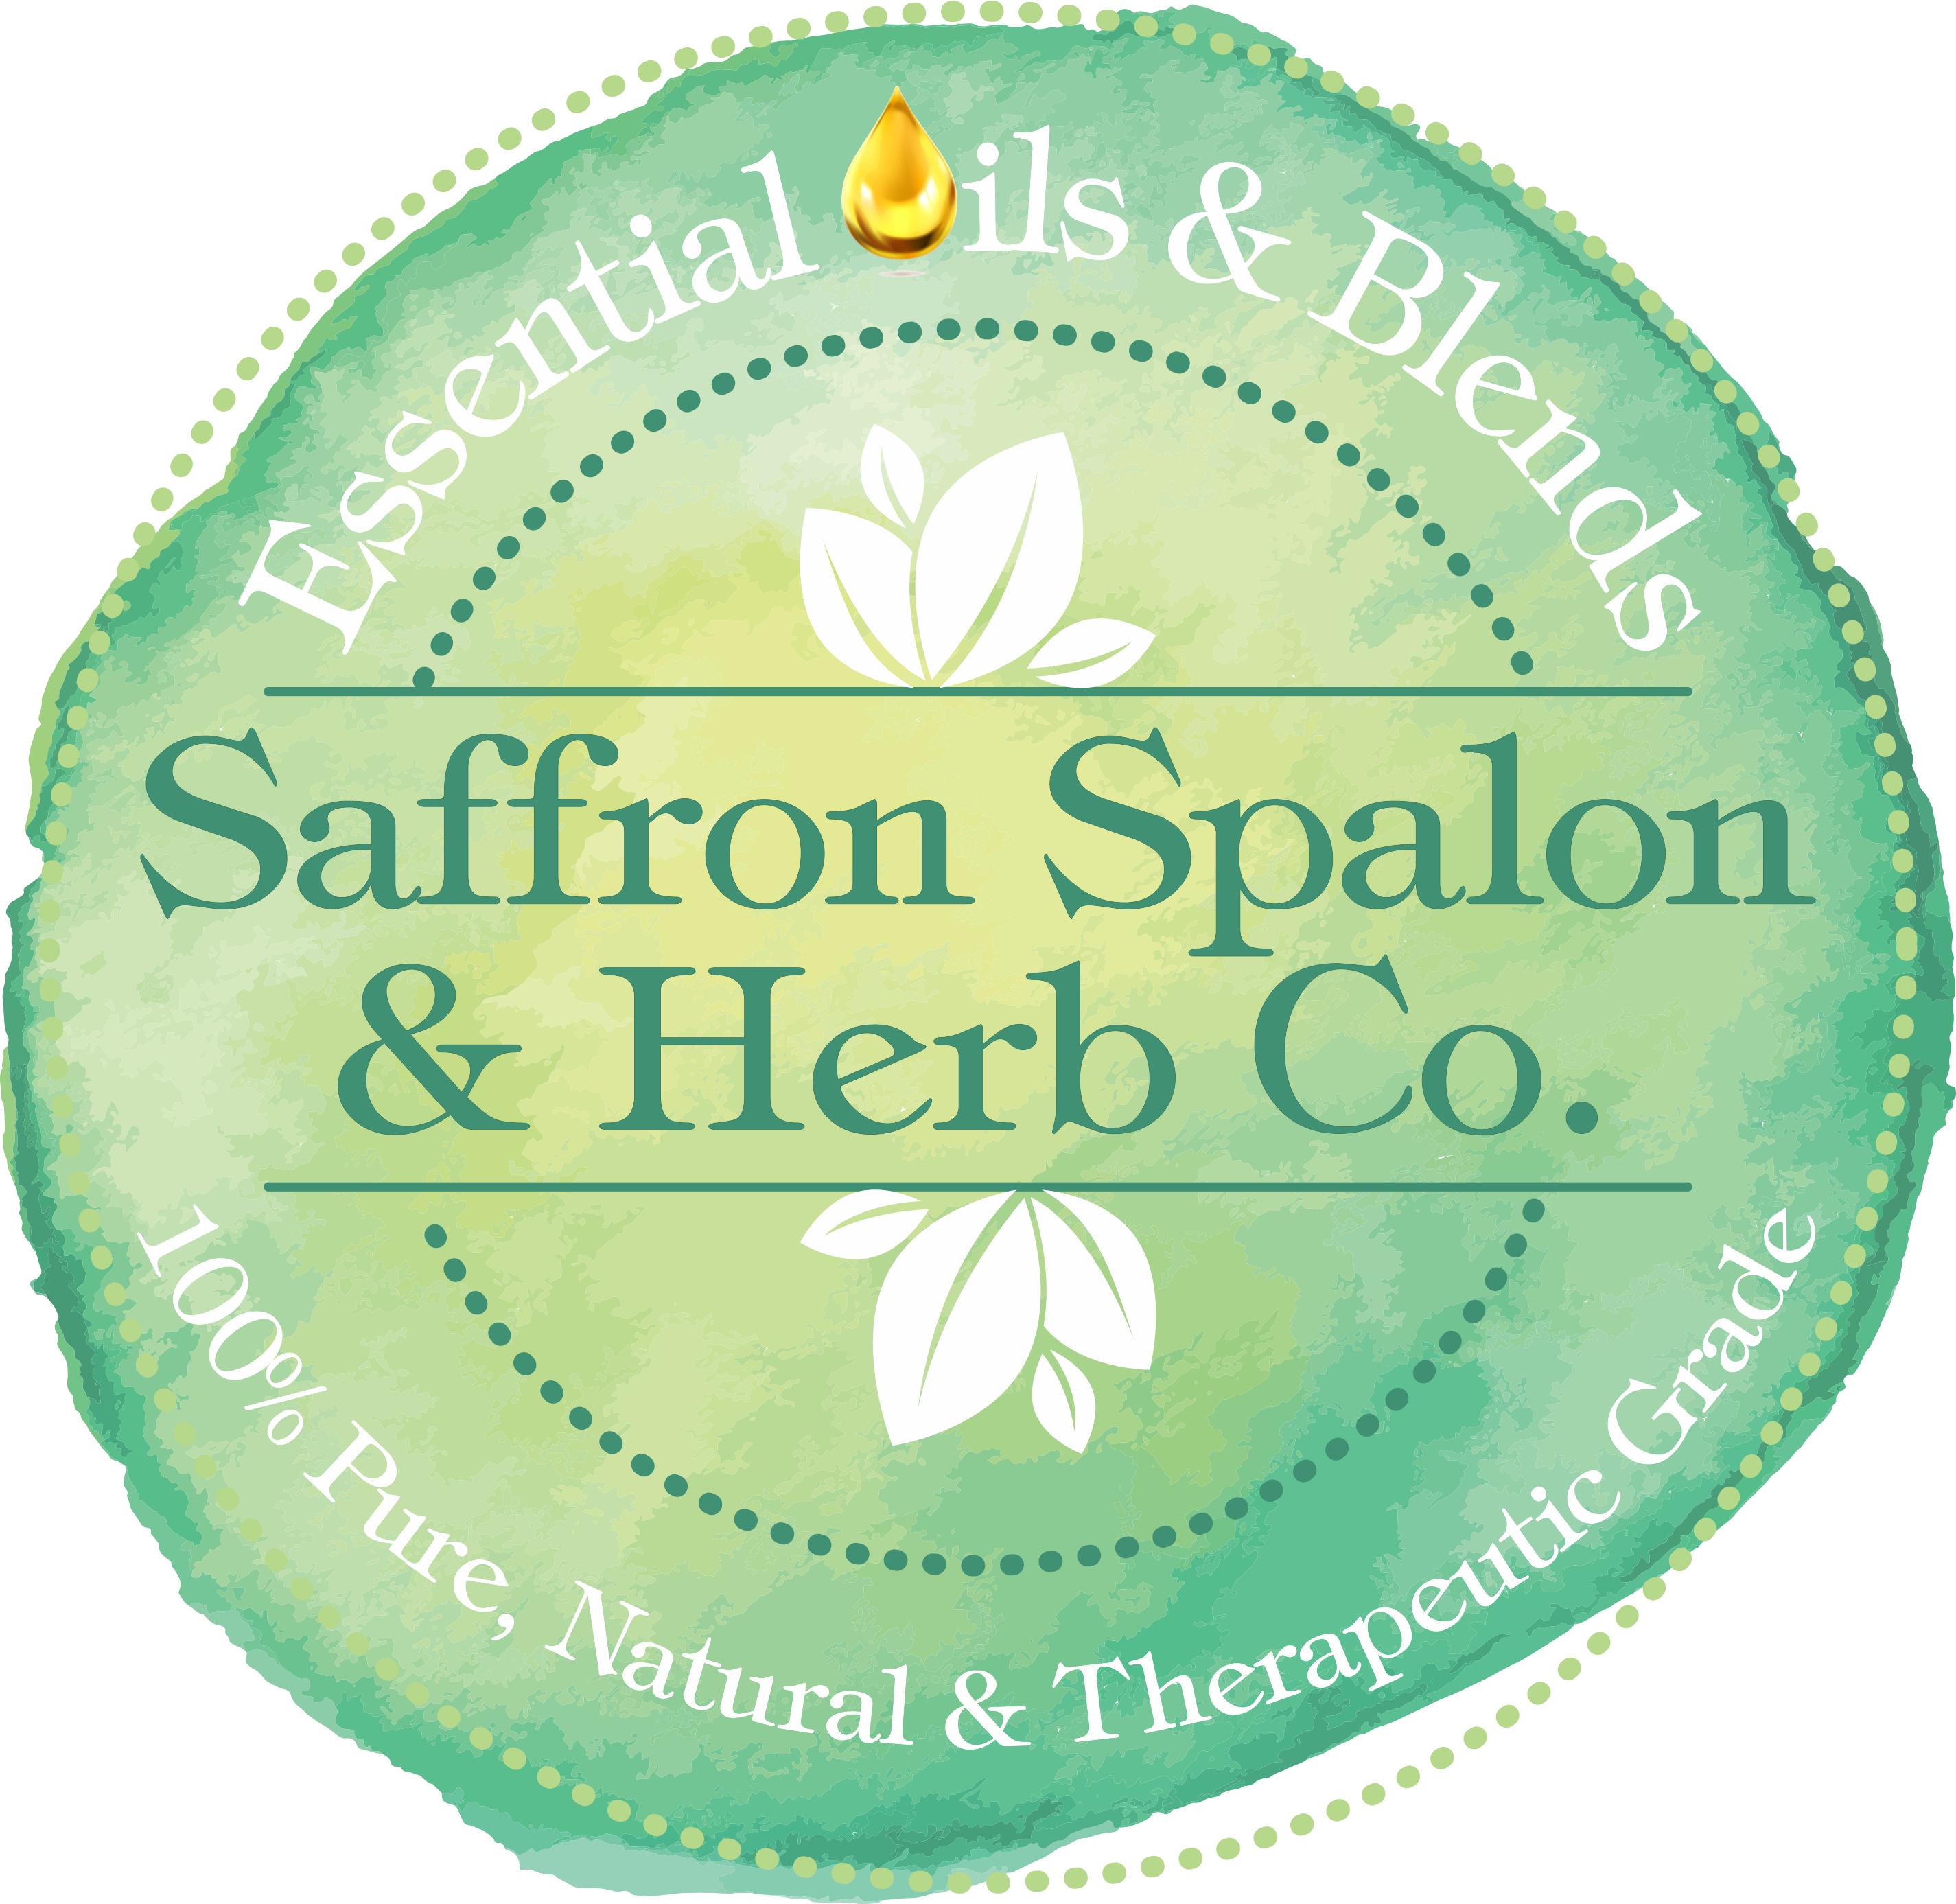 Saffron Spalon & Herb Co. offers 100% Pure, Natural, Undiluted & Therapeutic Grade Essential Oils & Essential Oils Blends, including our flagship products, Herbal Dentist™ Tooth & Gum Oil!  Herbal Dentist™ Tooth & Gum Oil which is a 100% Natural scientific blend of Almond, Clove, Peppermint, and Spearmint oils, professionally formulated to promote complete oral health through the elimination of bacterial infection above and beneath the gum surface.  Herbal Dentist™ is a scientific blend of essential plant oils great for: Oral Pain • Gum & Periodontal Disease • Gingivitis • Bleeding & Receding Gums • Gum Infections • Bad Breath • Sensitive Teeth • Sinusitis • Fever Blisters